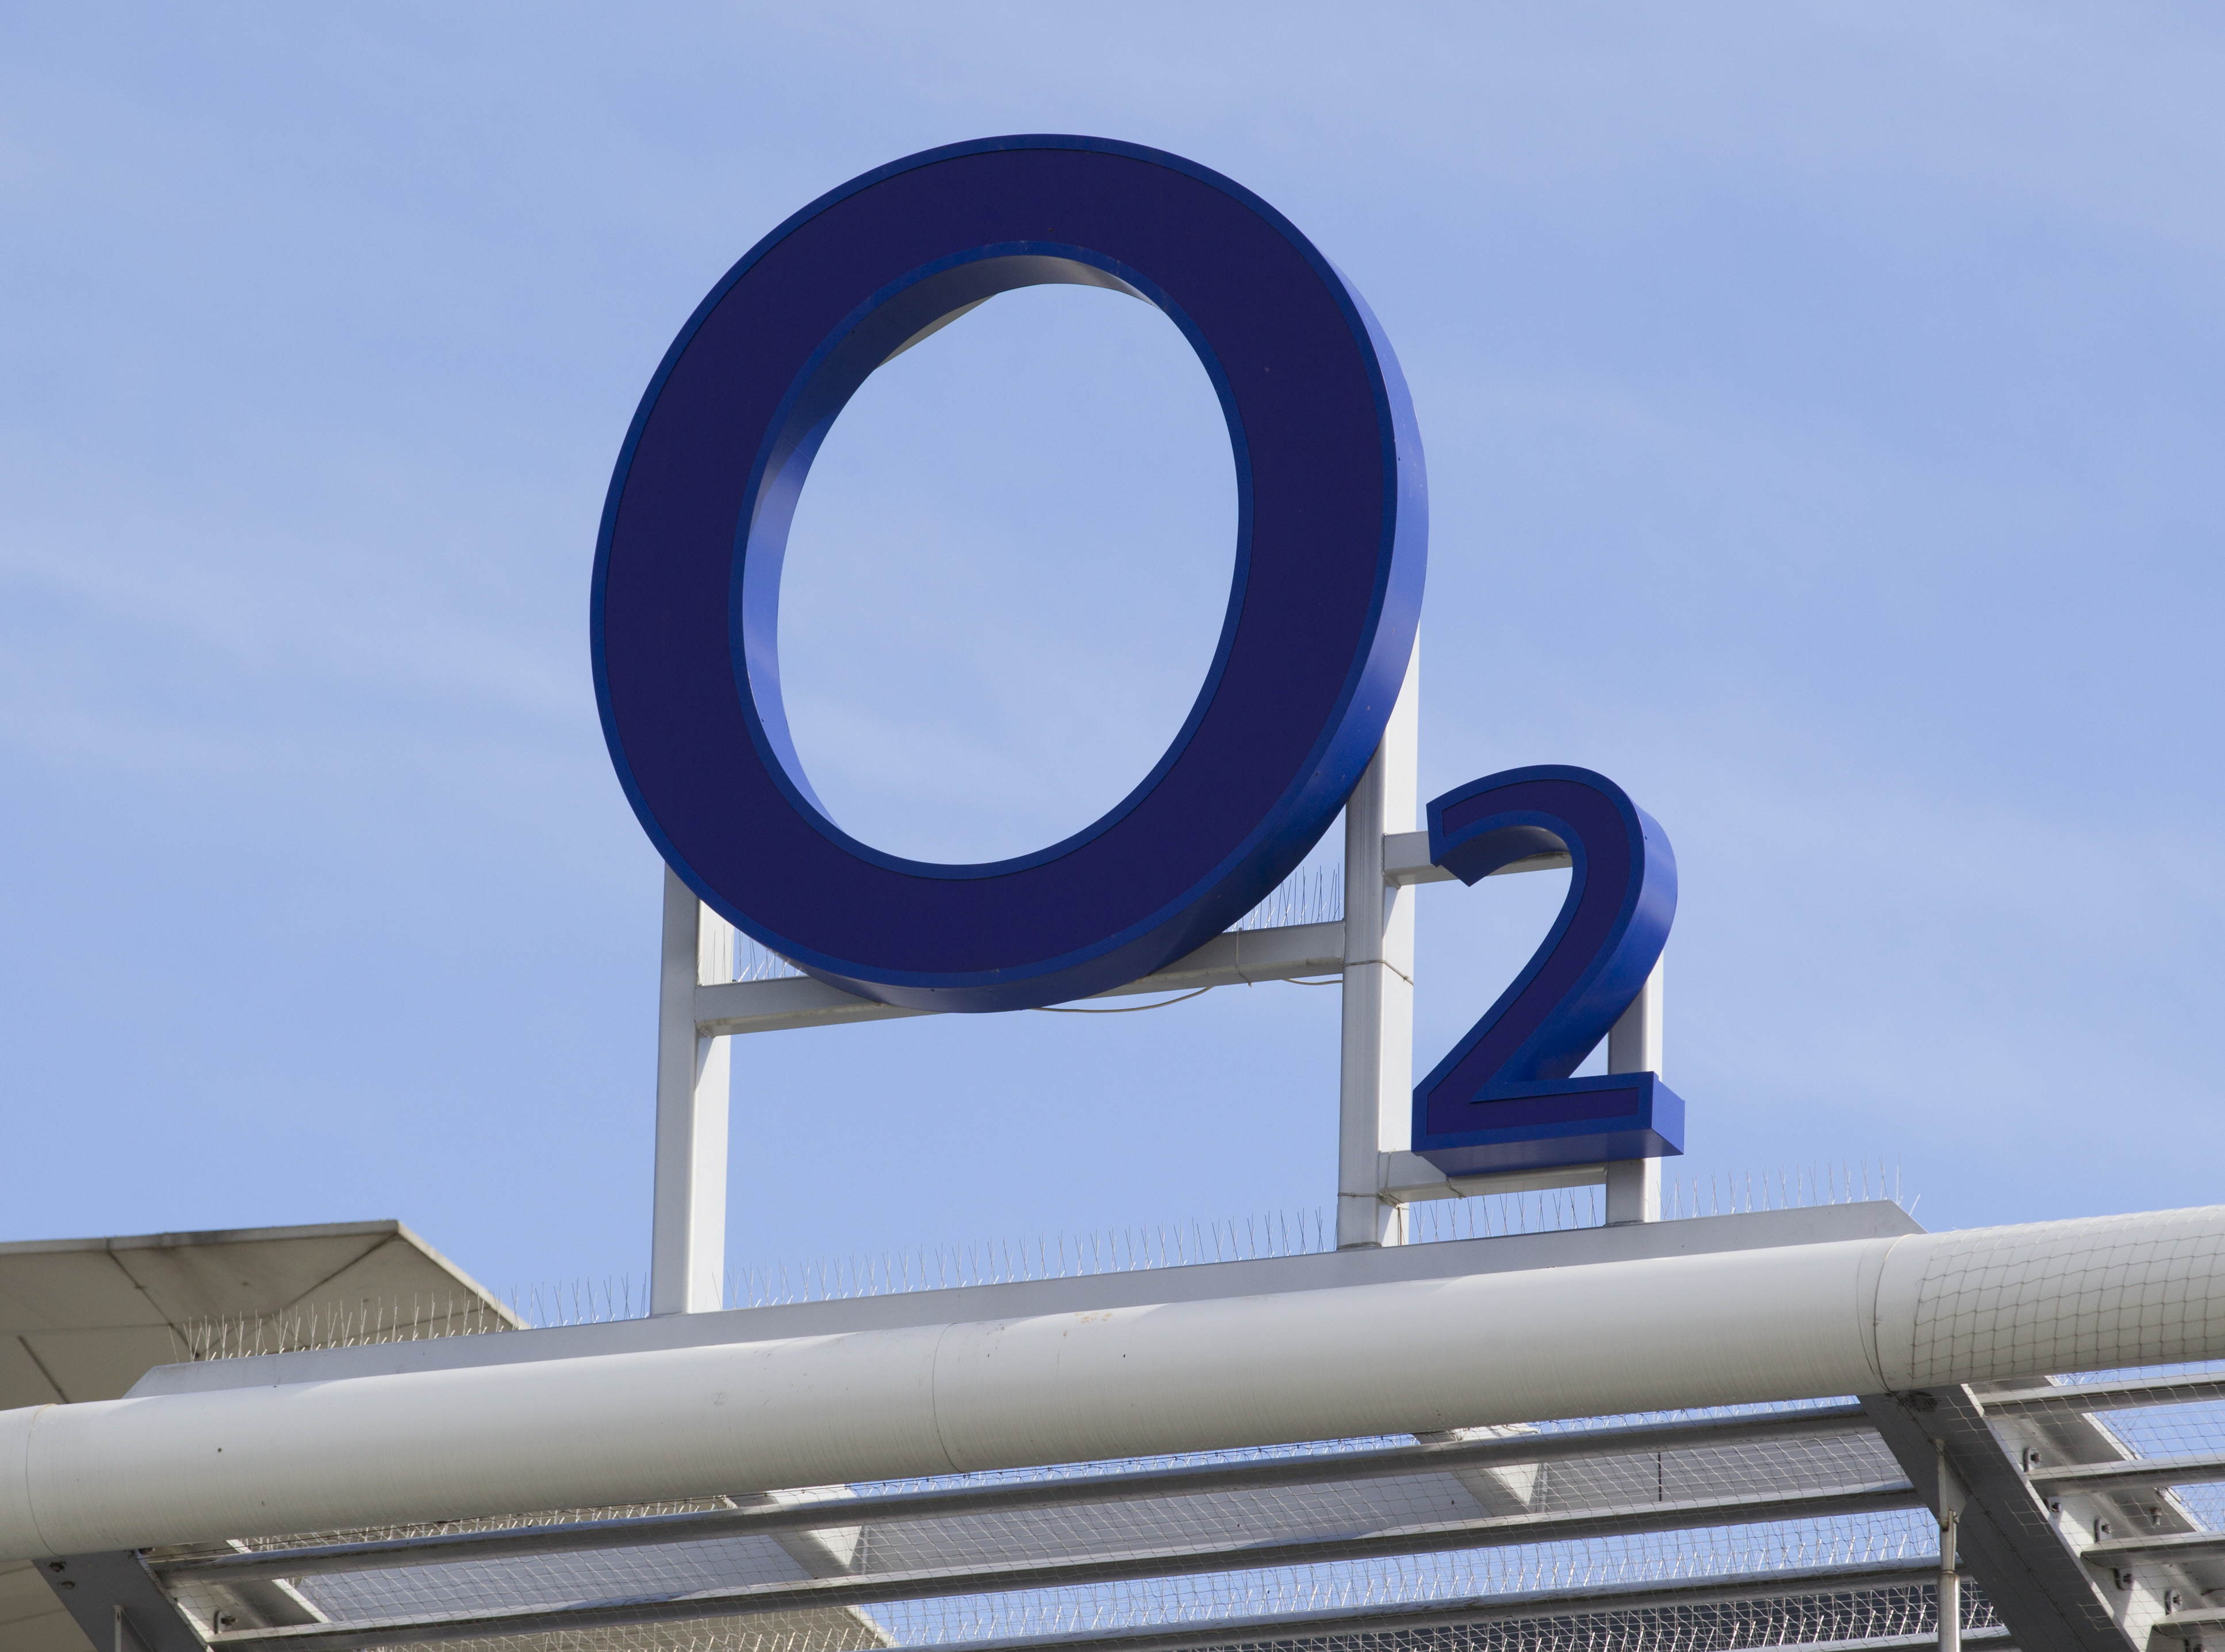 O2 has been fined £10.5million for overcharging more than 140,000 customers